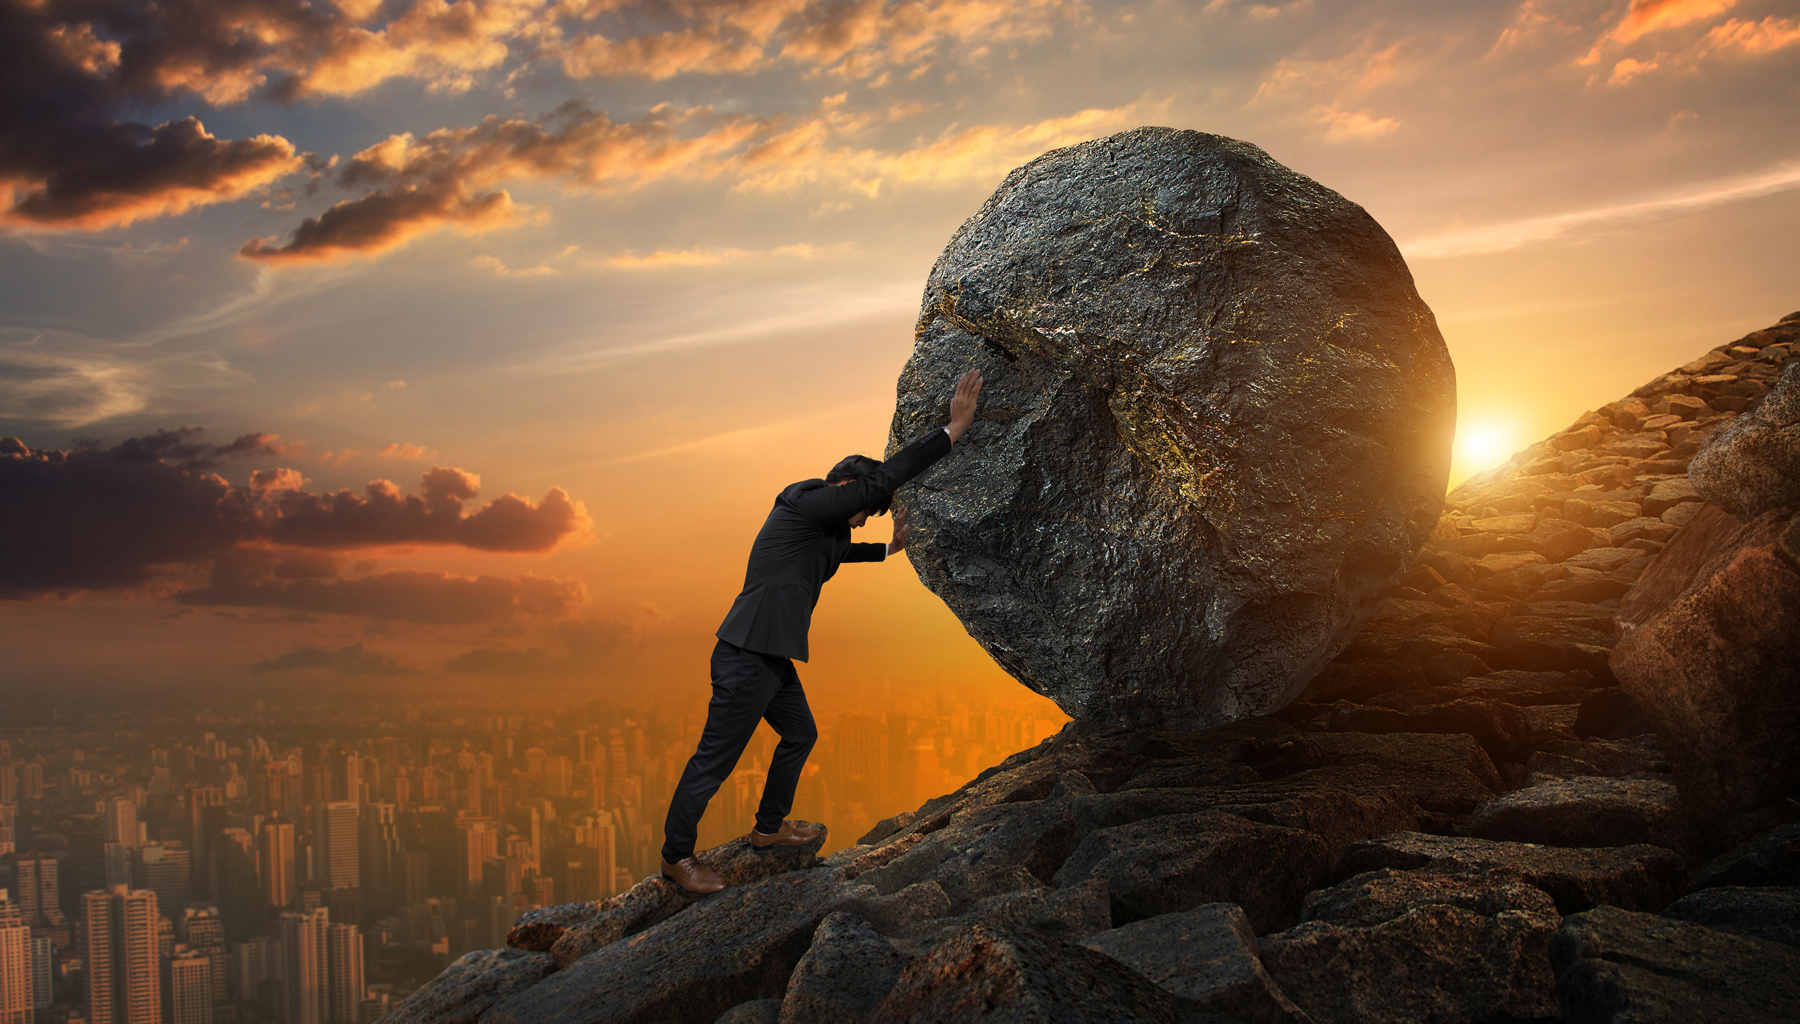 10 Things You Can Still Conquer In Turbulent Times